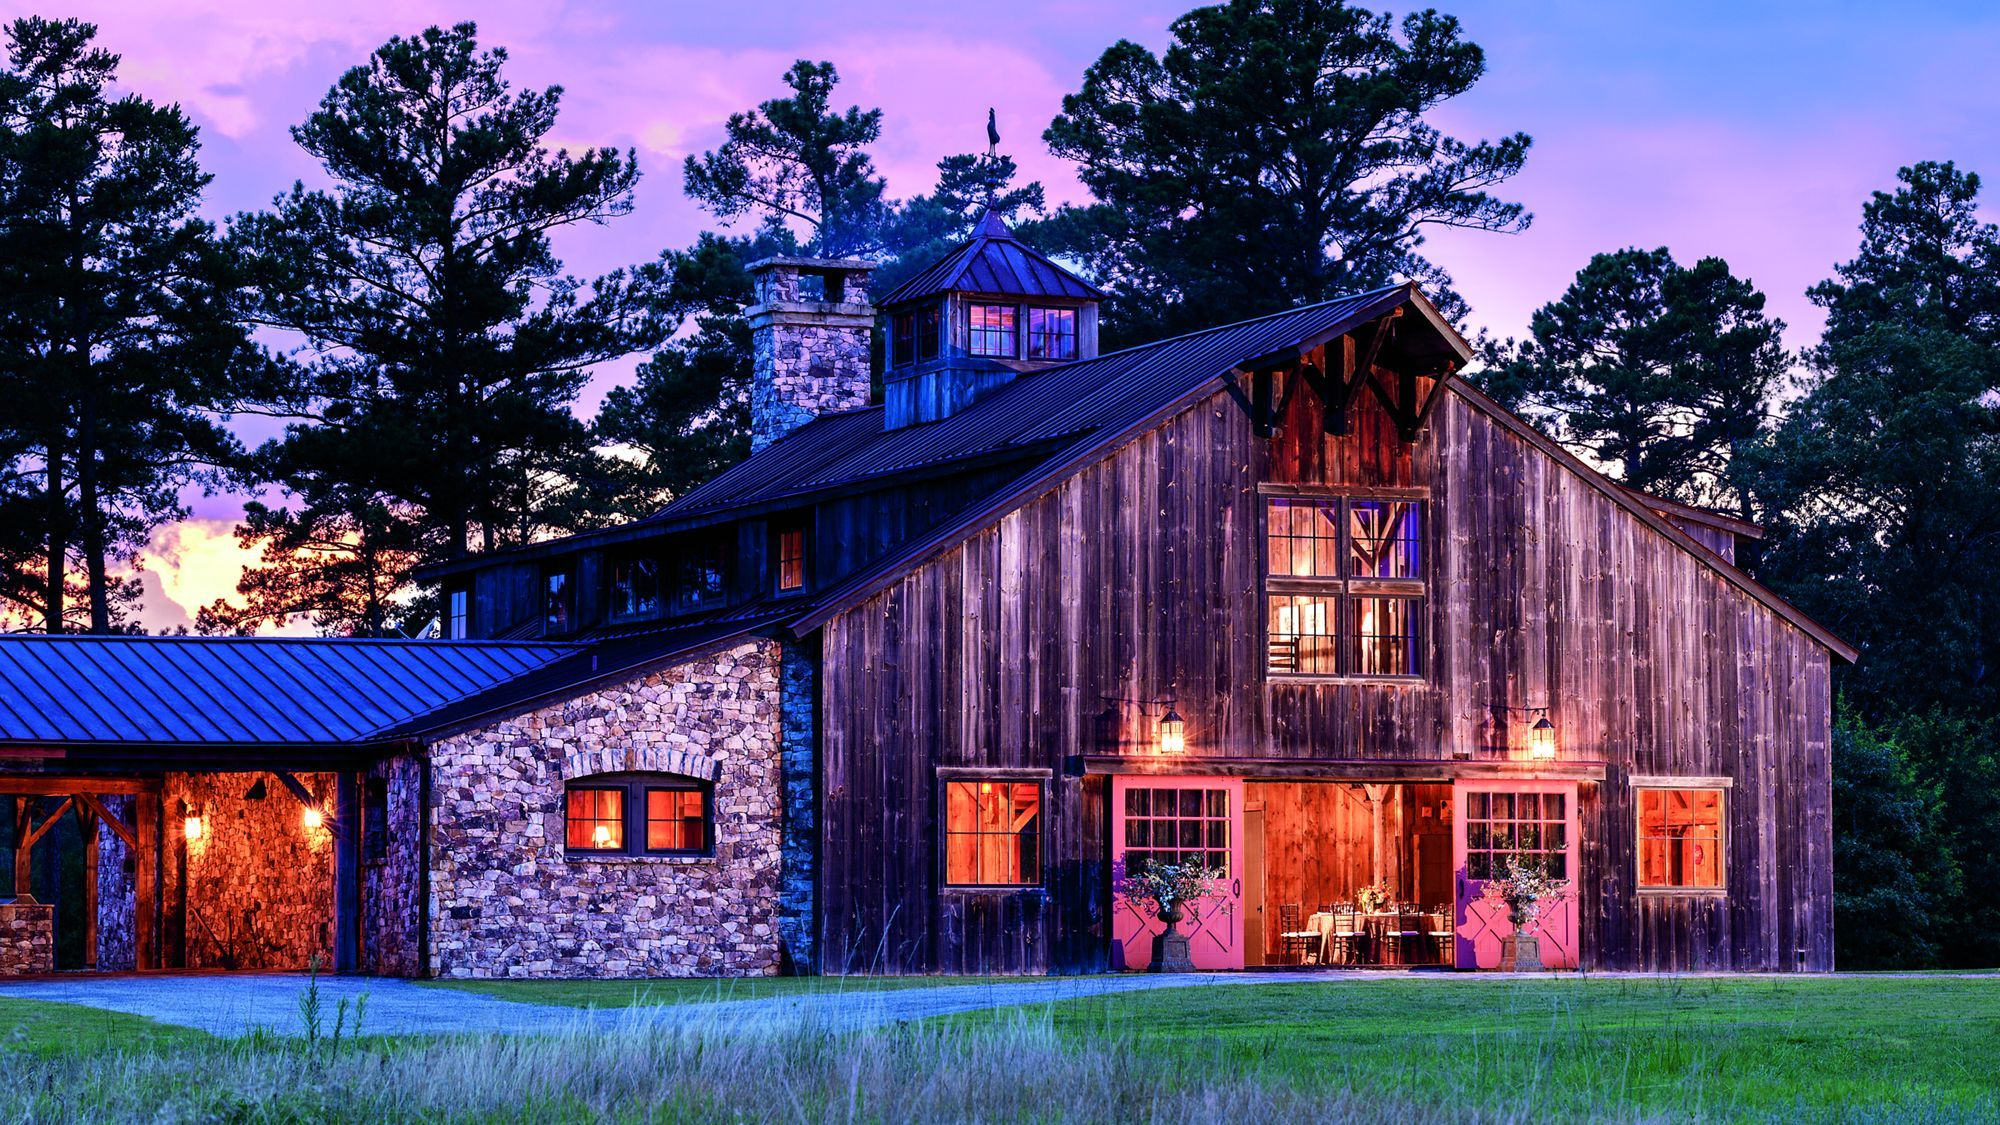 Exterior of a barn at dusk with trees in the background ...